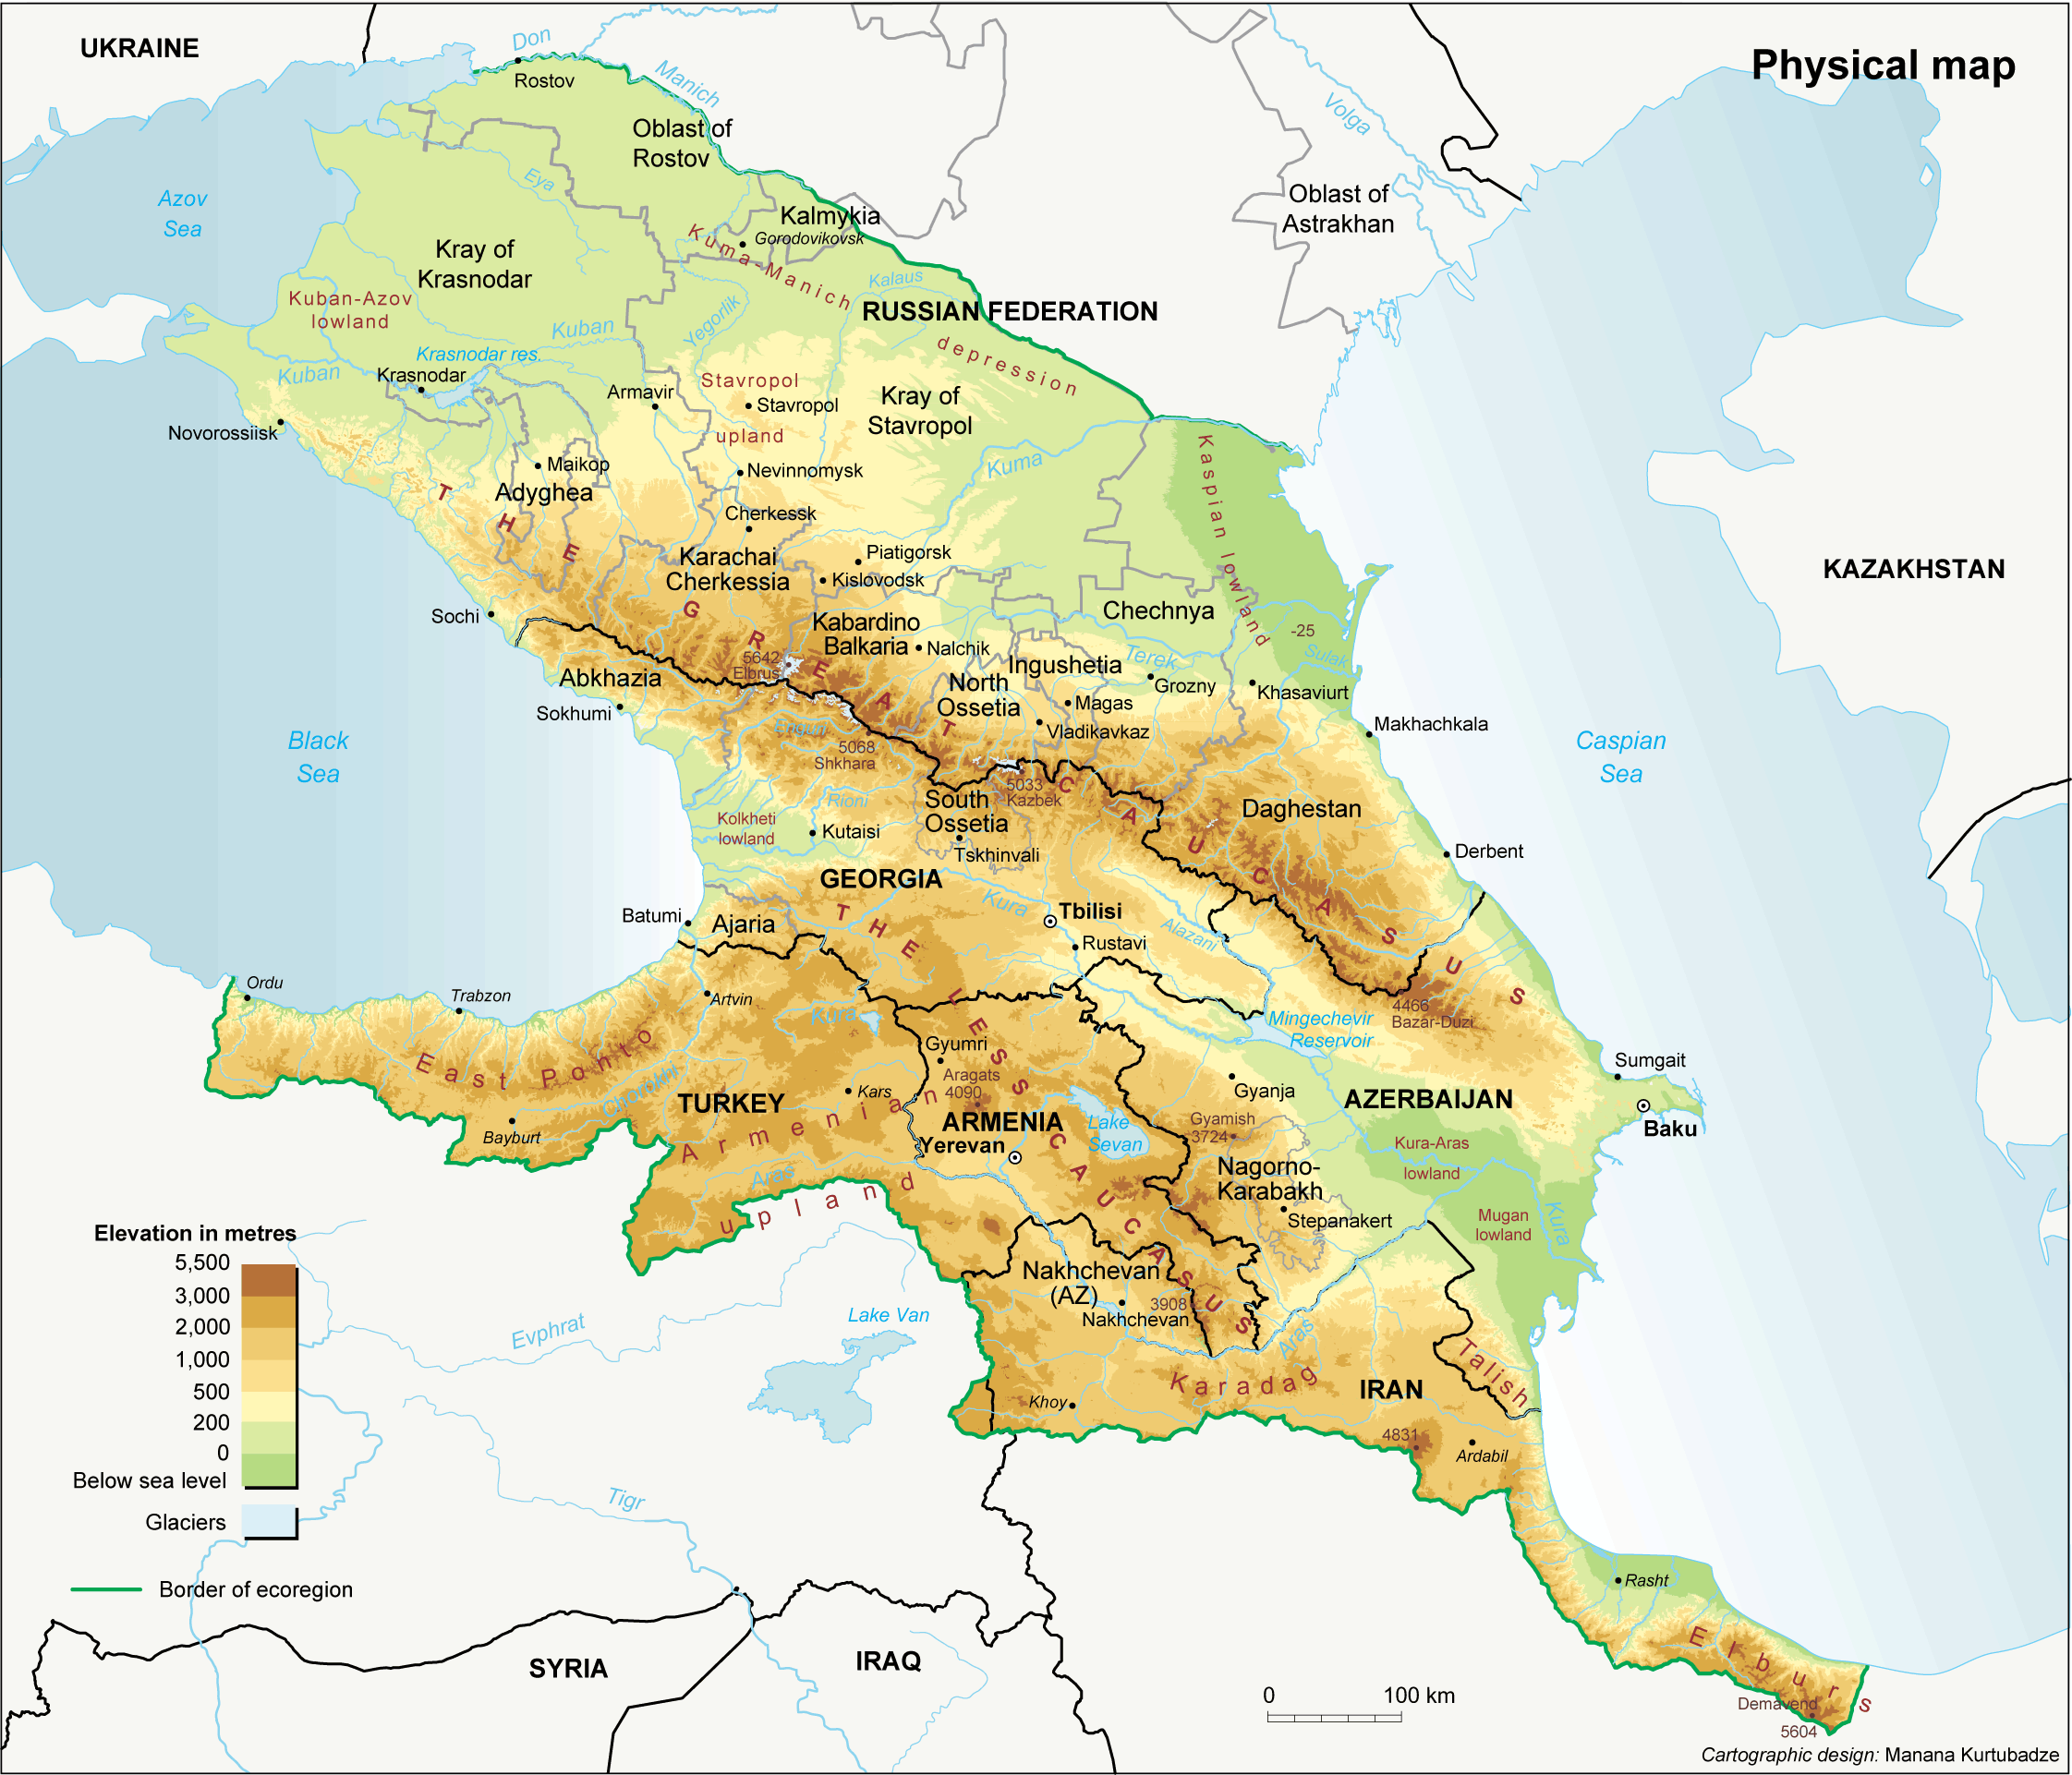 South Caucasus Maps Eurasian Geopolitics - Physical map of russia